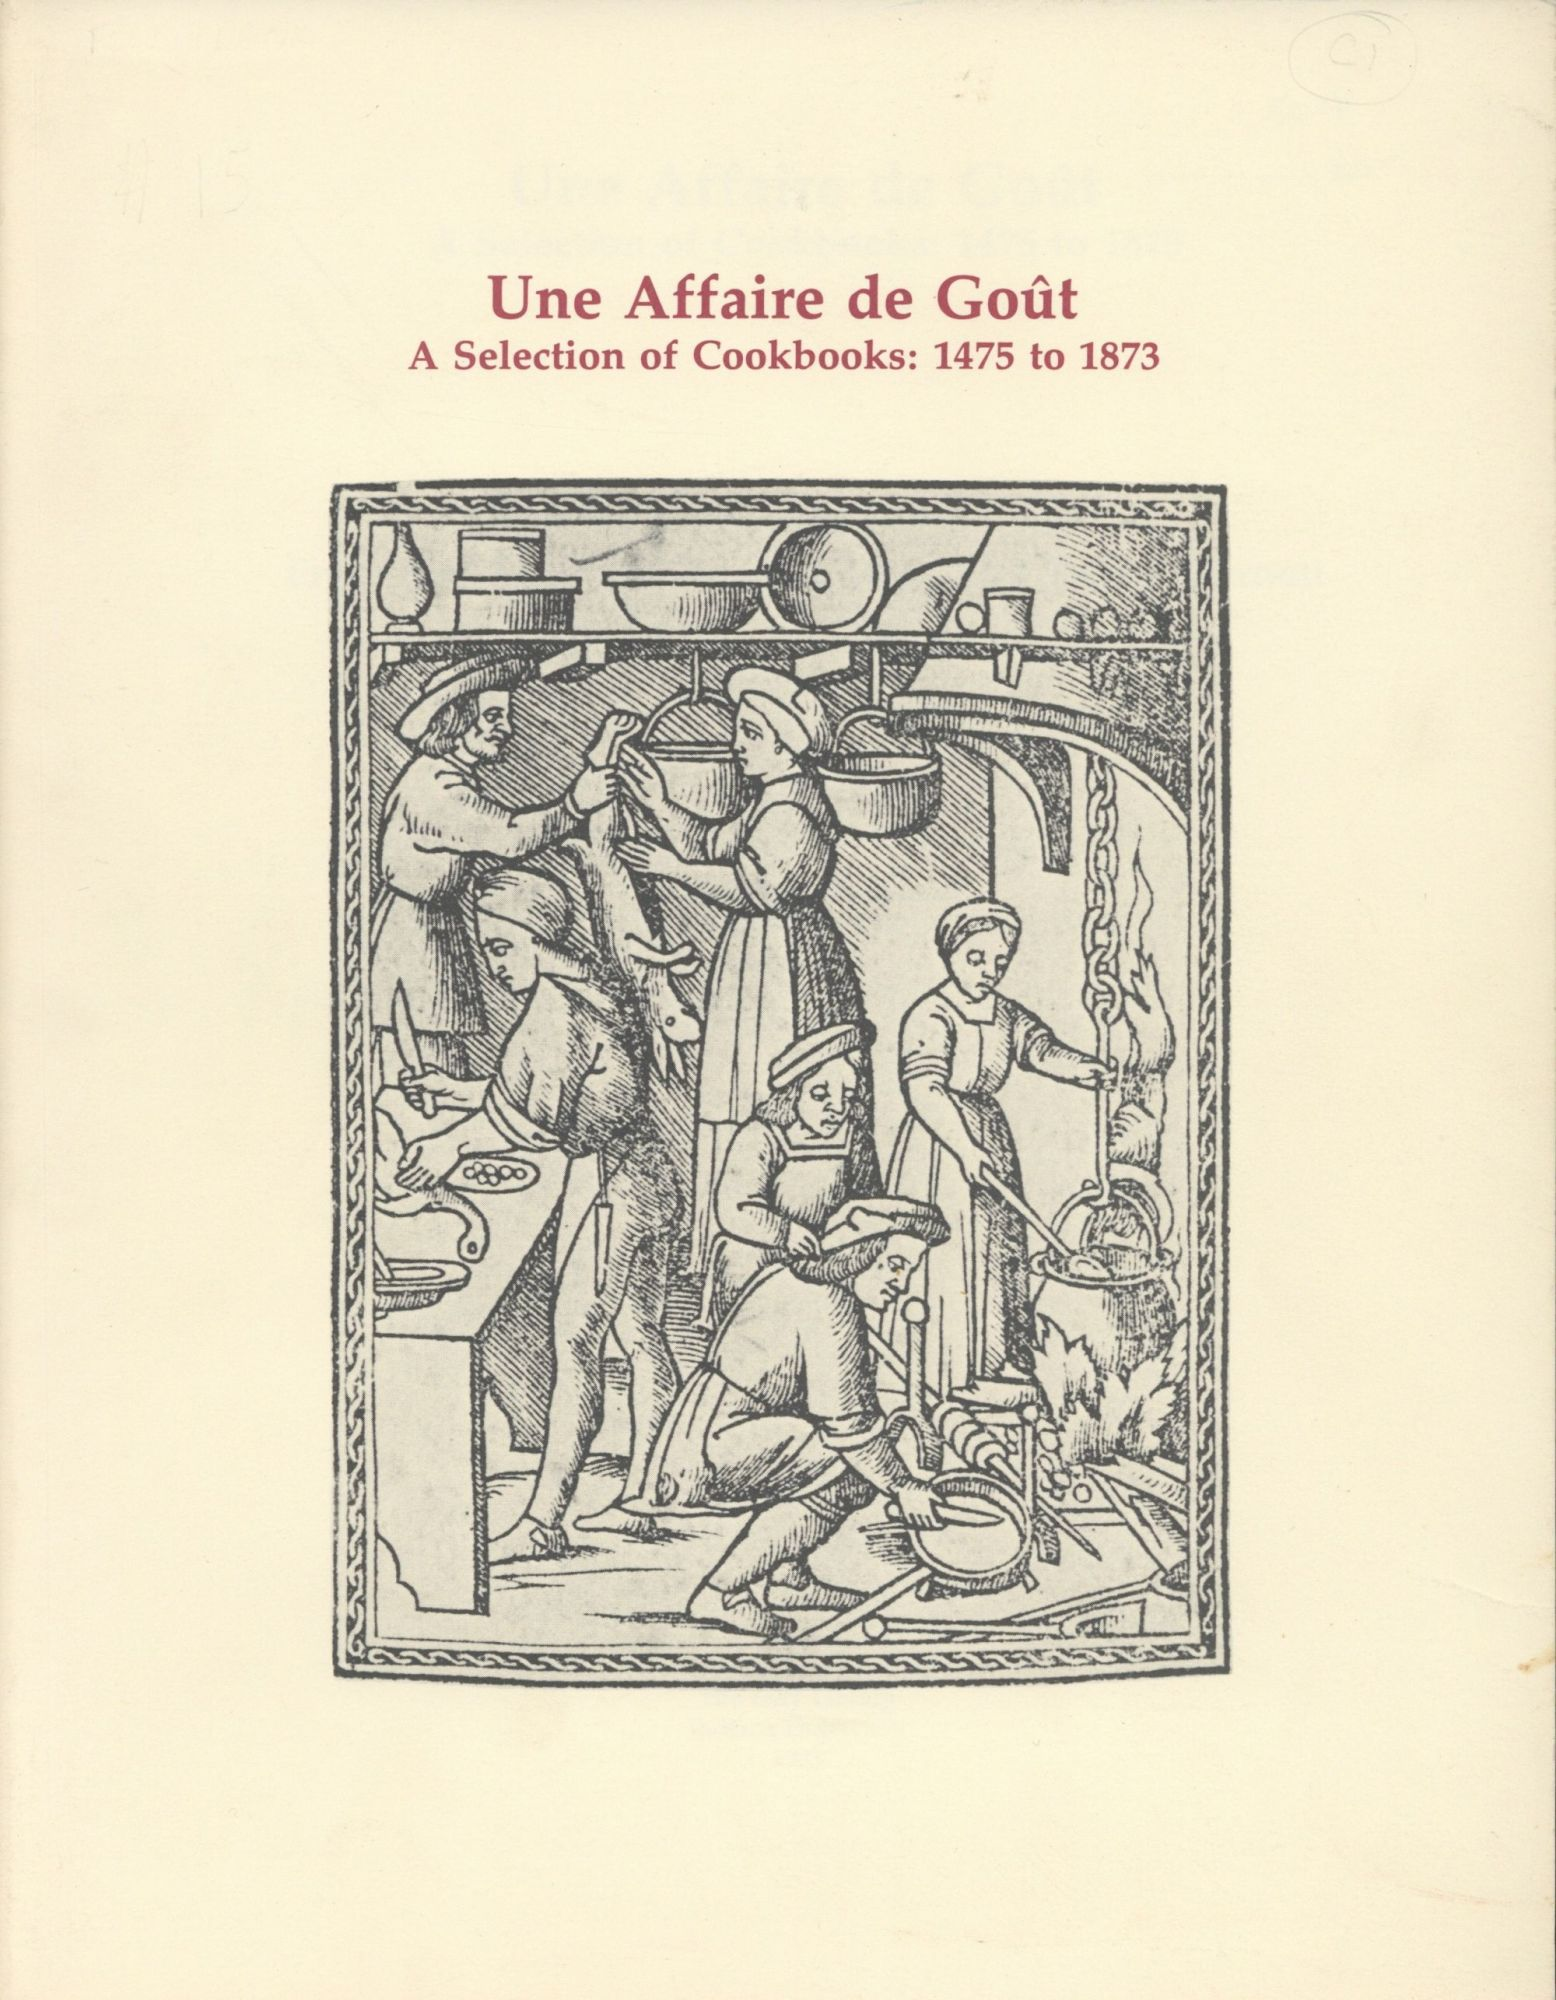 Une Affaire de Goût, A Selection of Cookbooks: 1475 to 1873: From the Library of Dr. and Mrs. John Talbot Gernon. Gernon Dr., Mrs. John Talbot, Pegram Harrison.